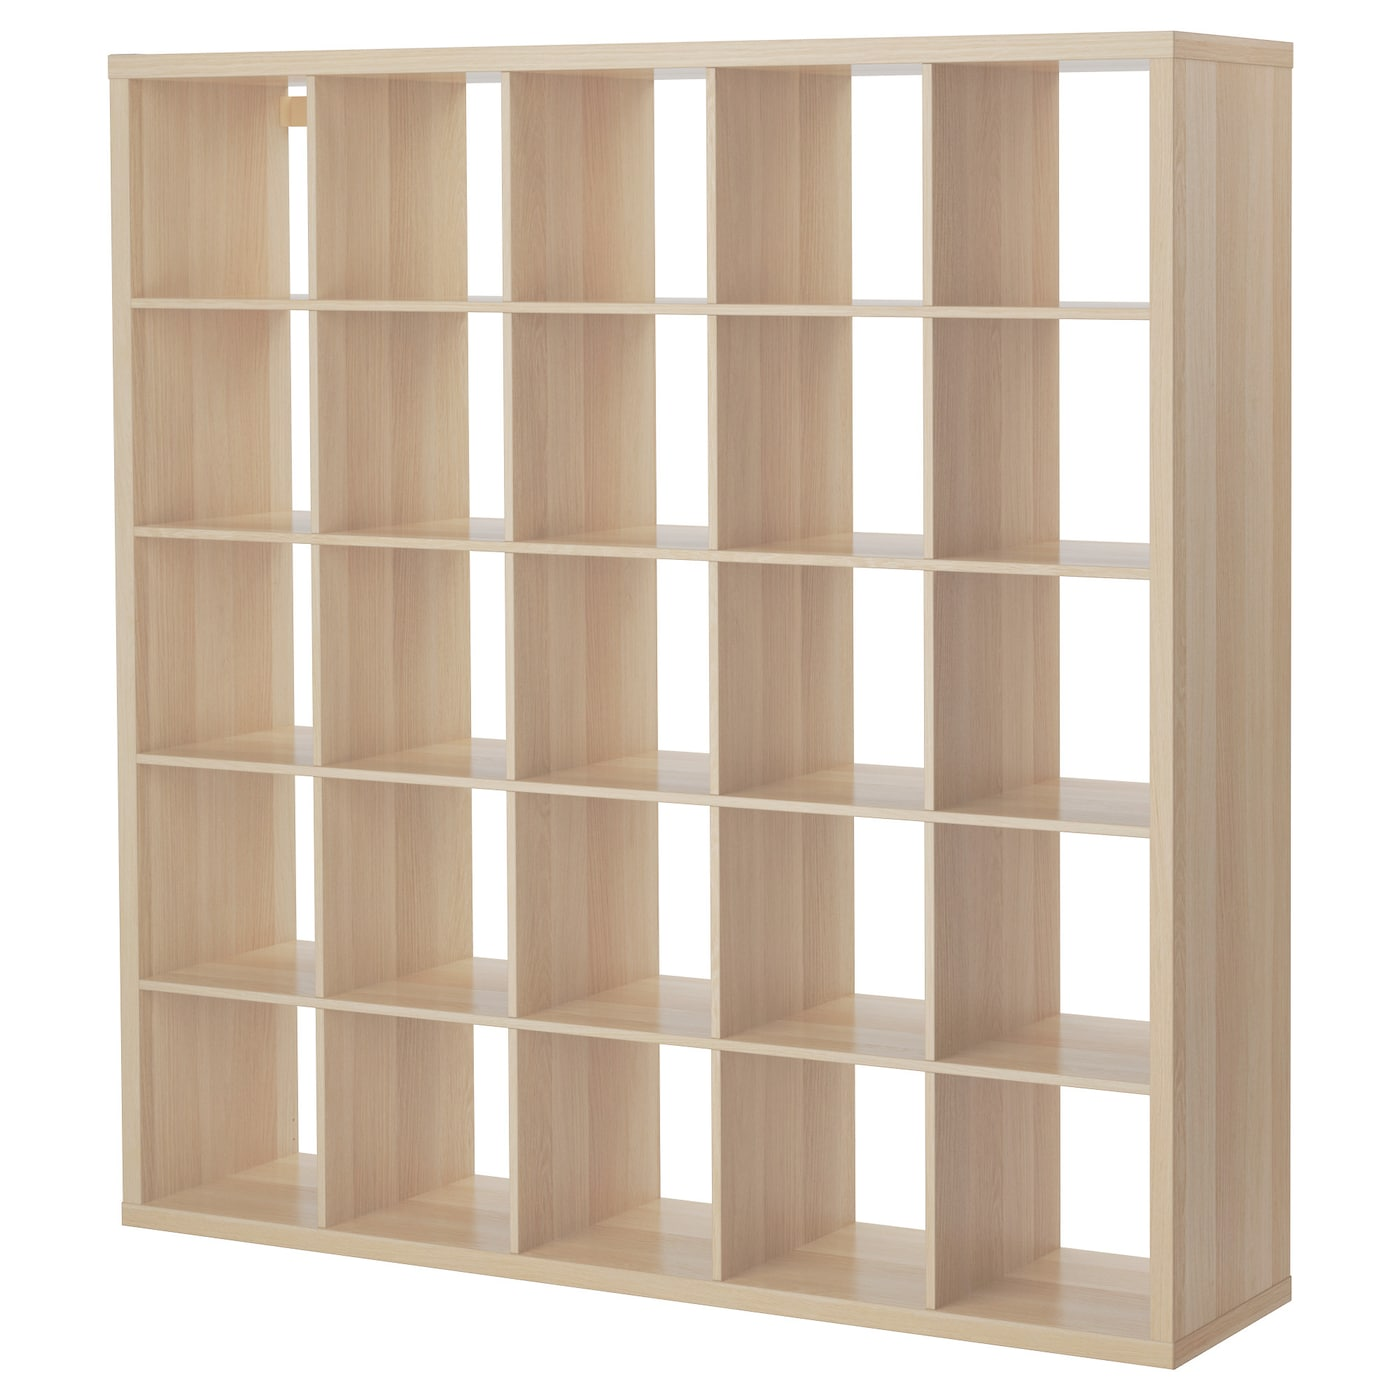 kallax shelving unit white stained oak effect 182x182 cm. Black Bedroom Furniture Sets. Home Design Ideas